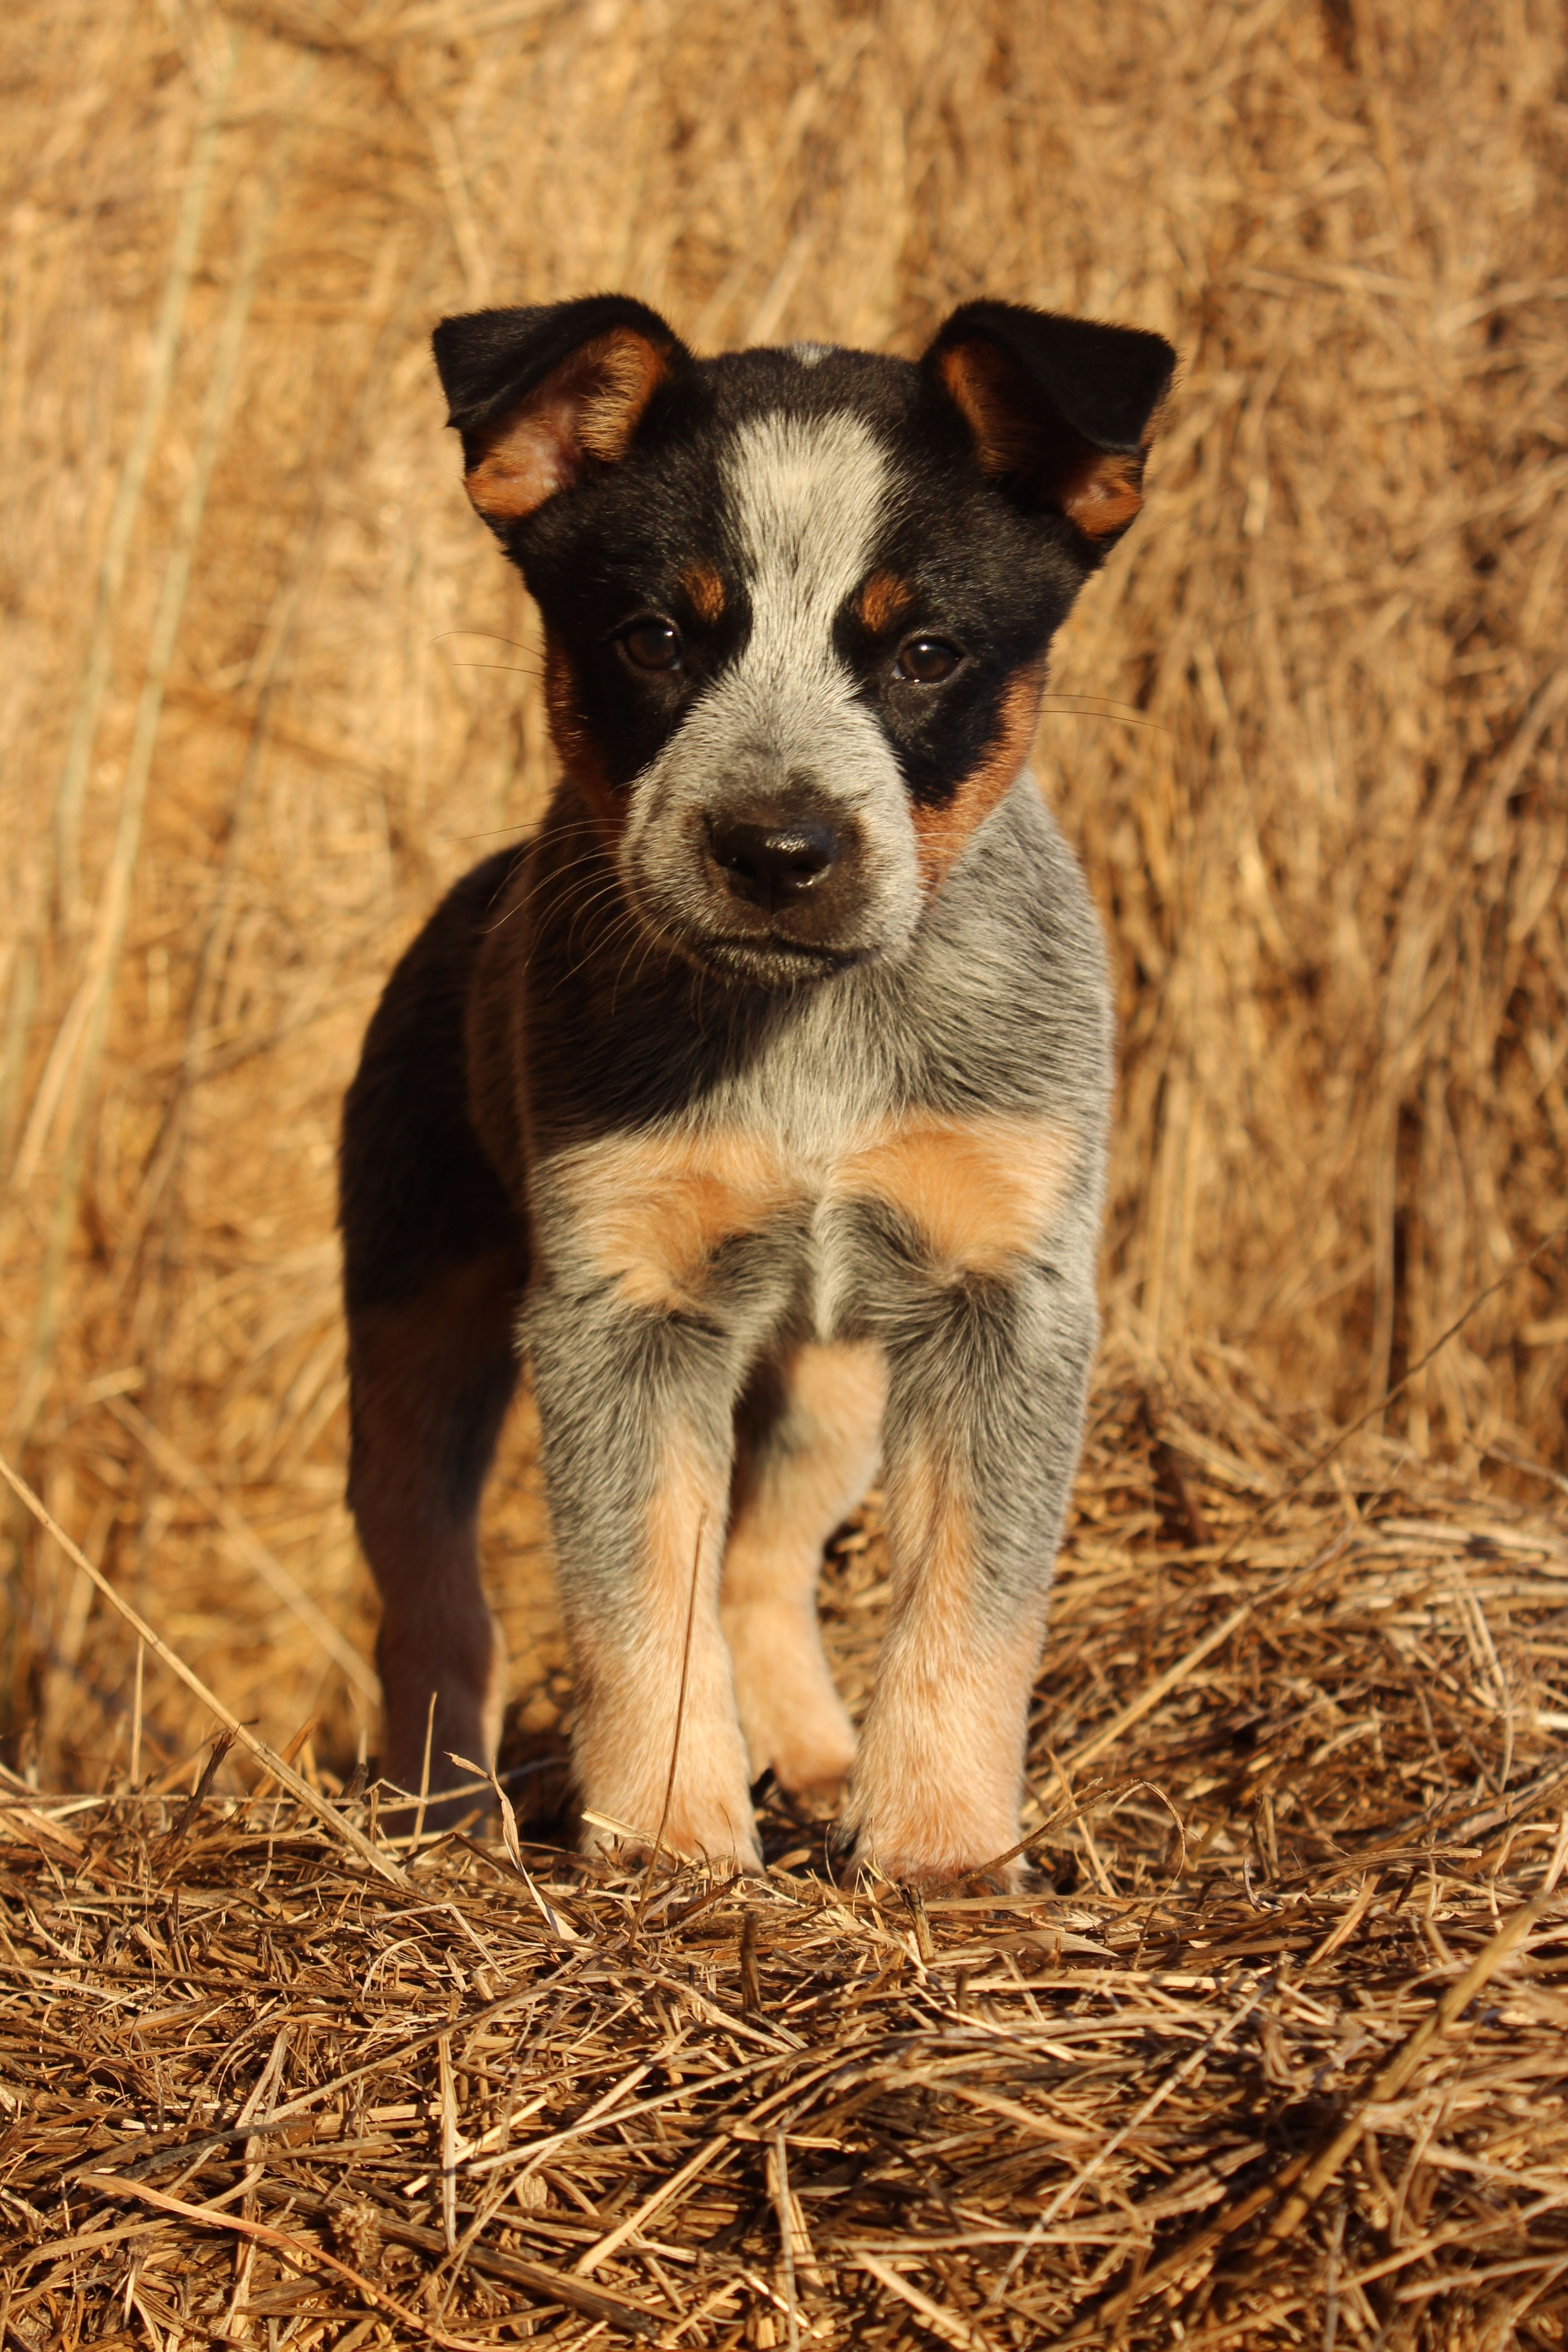 Blue Heeler's are the best puppies and so loyal! We love